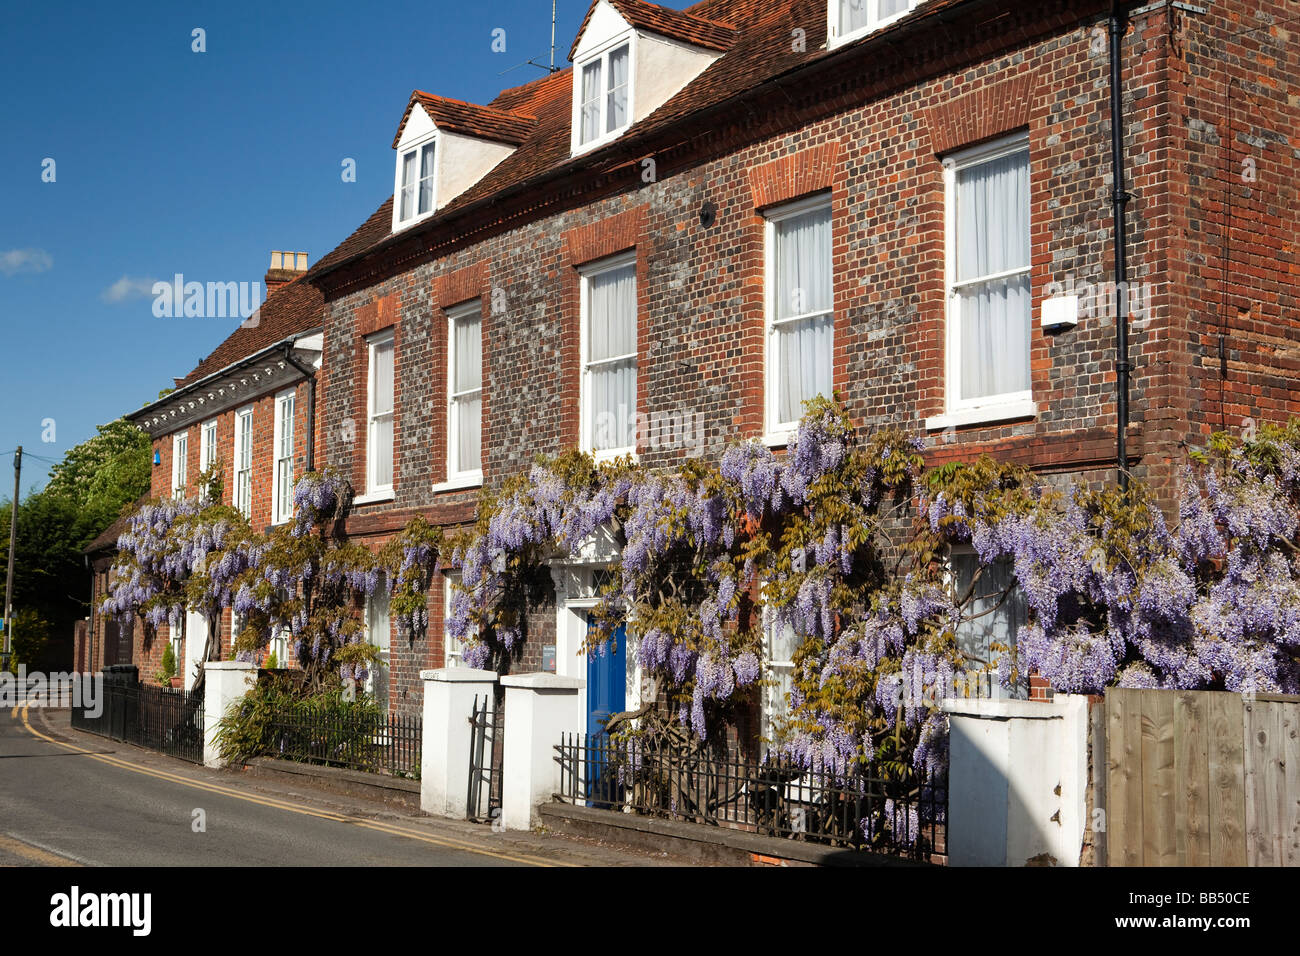 England Berkshire Cookham Sutton Road Wistaria Cottage Wisteria hung front of Eastgate John Lewis building - Stock Image